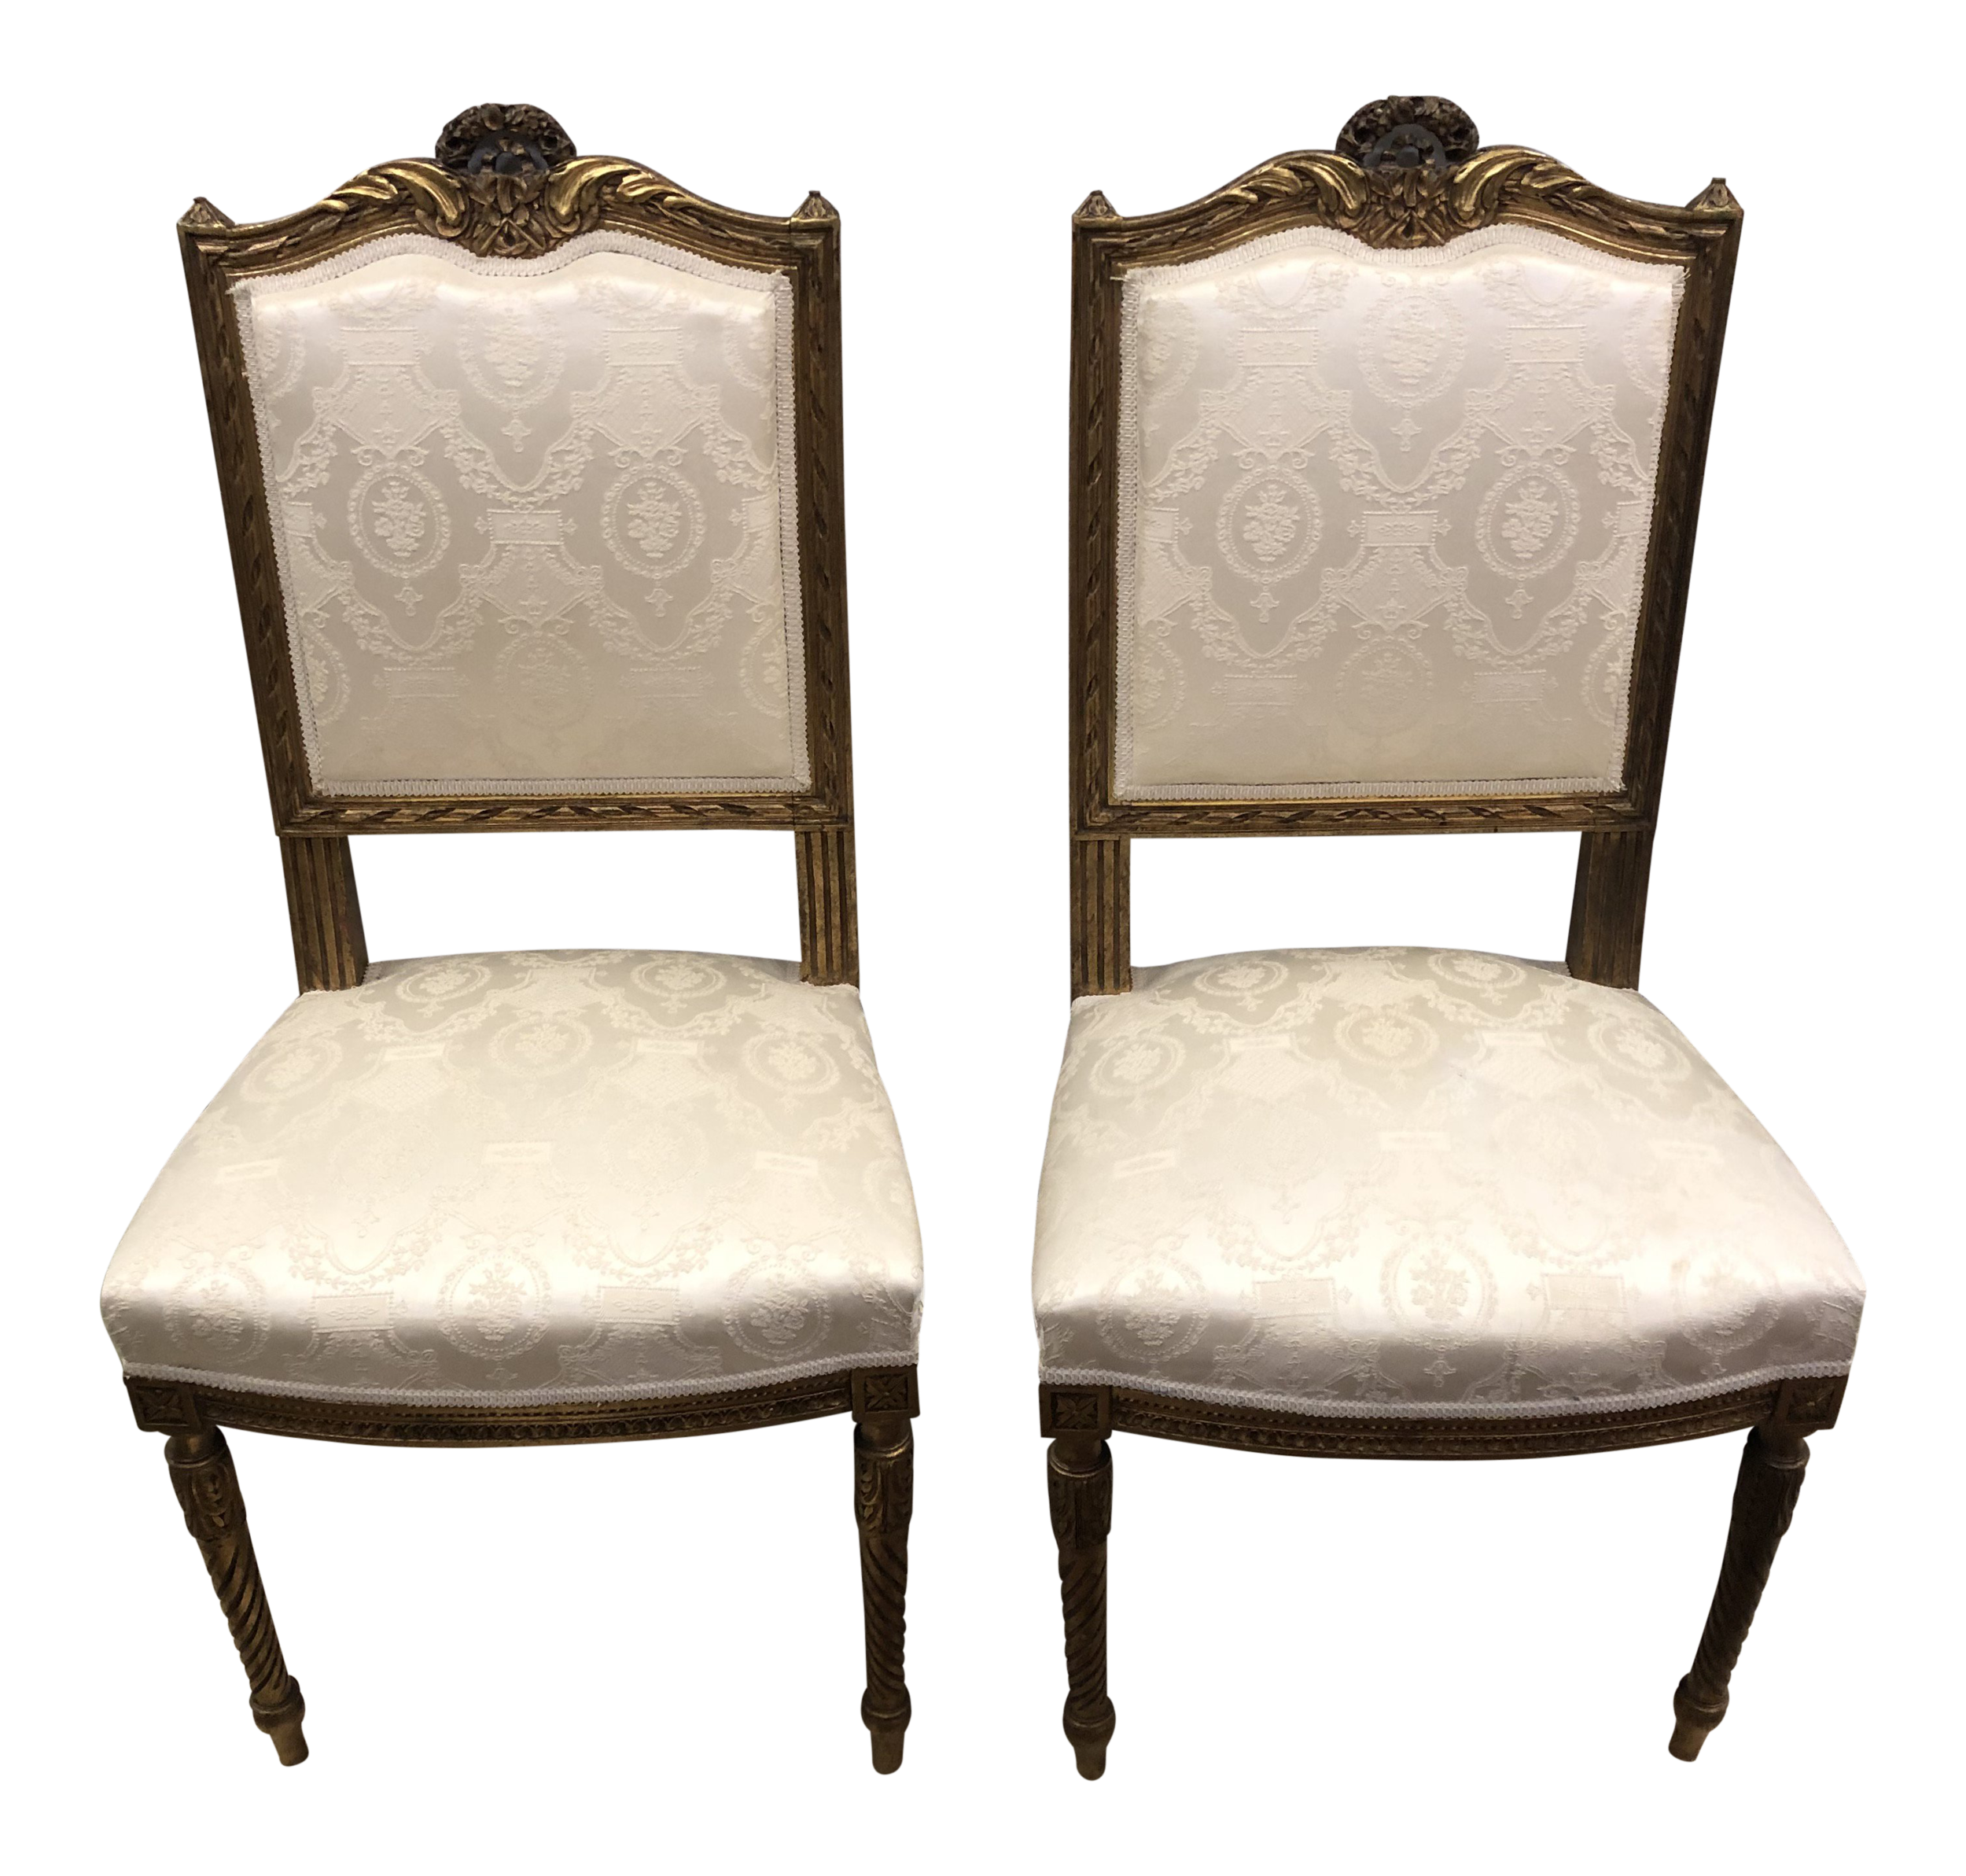 1920s-vintage-french-gilded-side-chairs-a-pair-2767.png